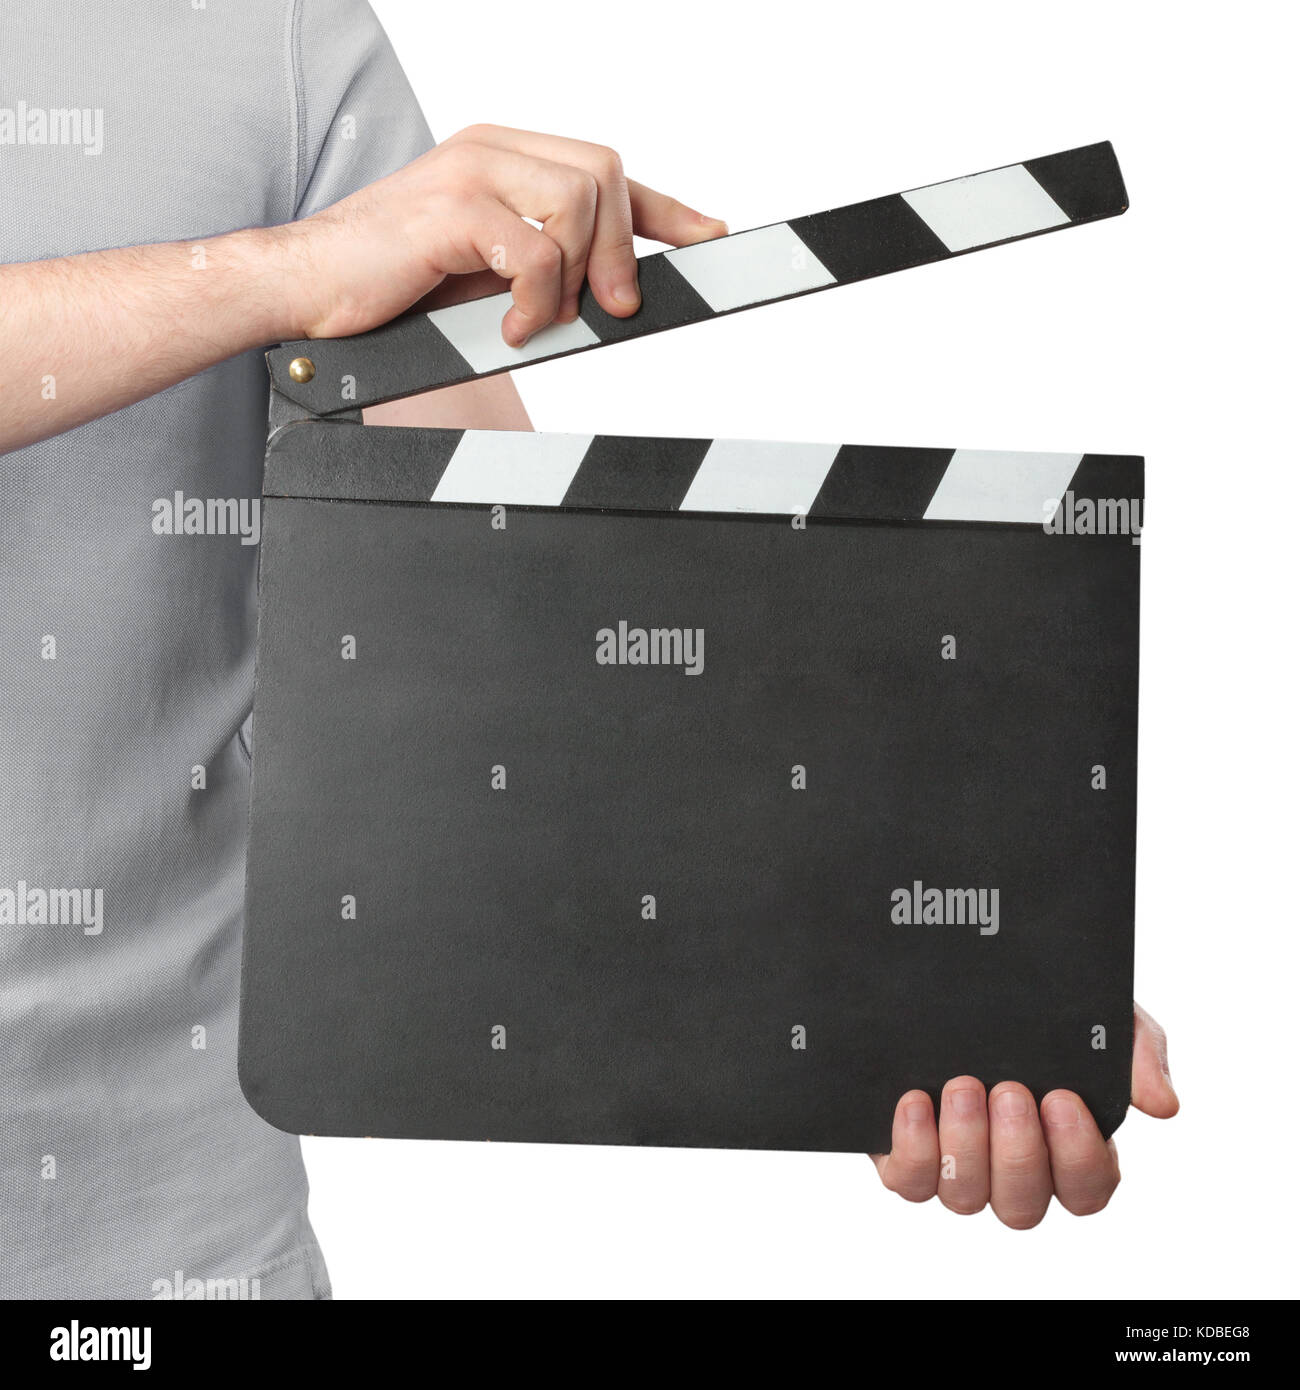 Hands holding clapper board isolated on white background - Stock Image